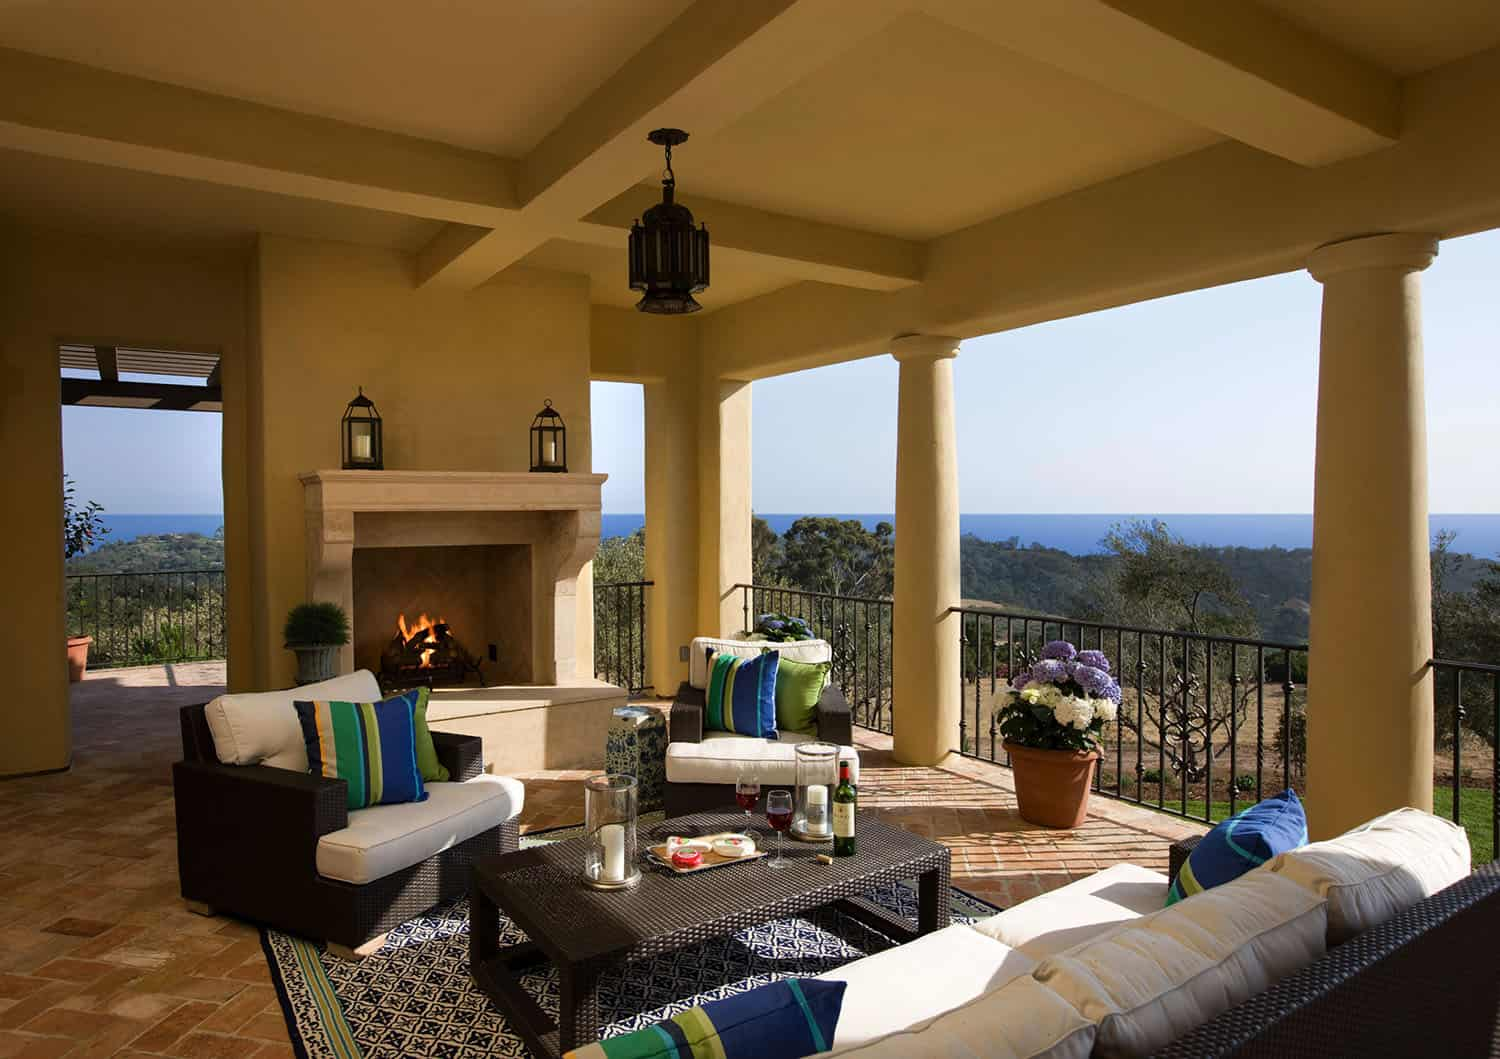 mediterranean-style-loggia-with-fireplace